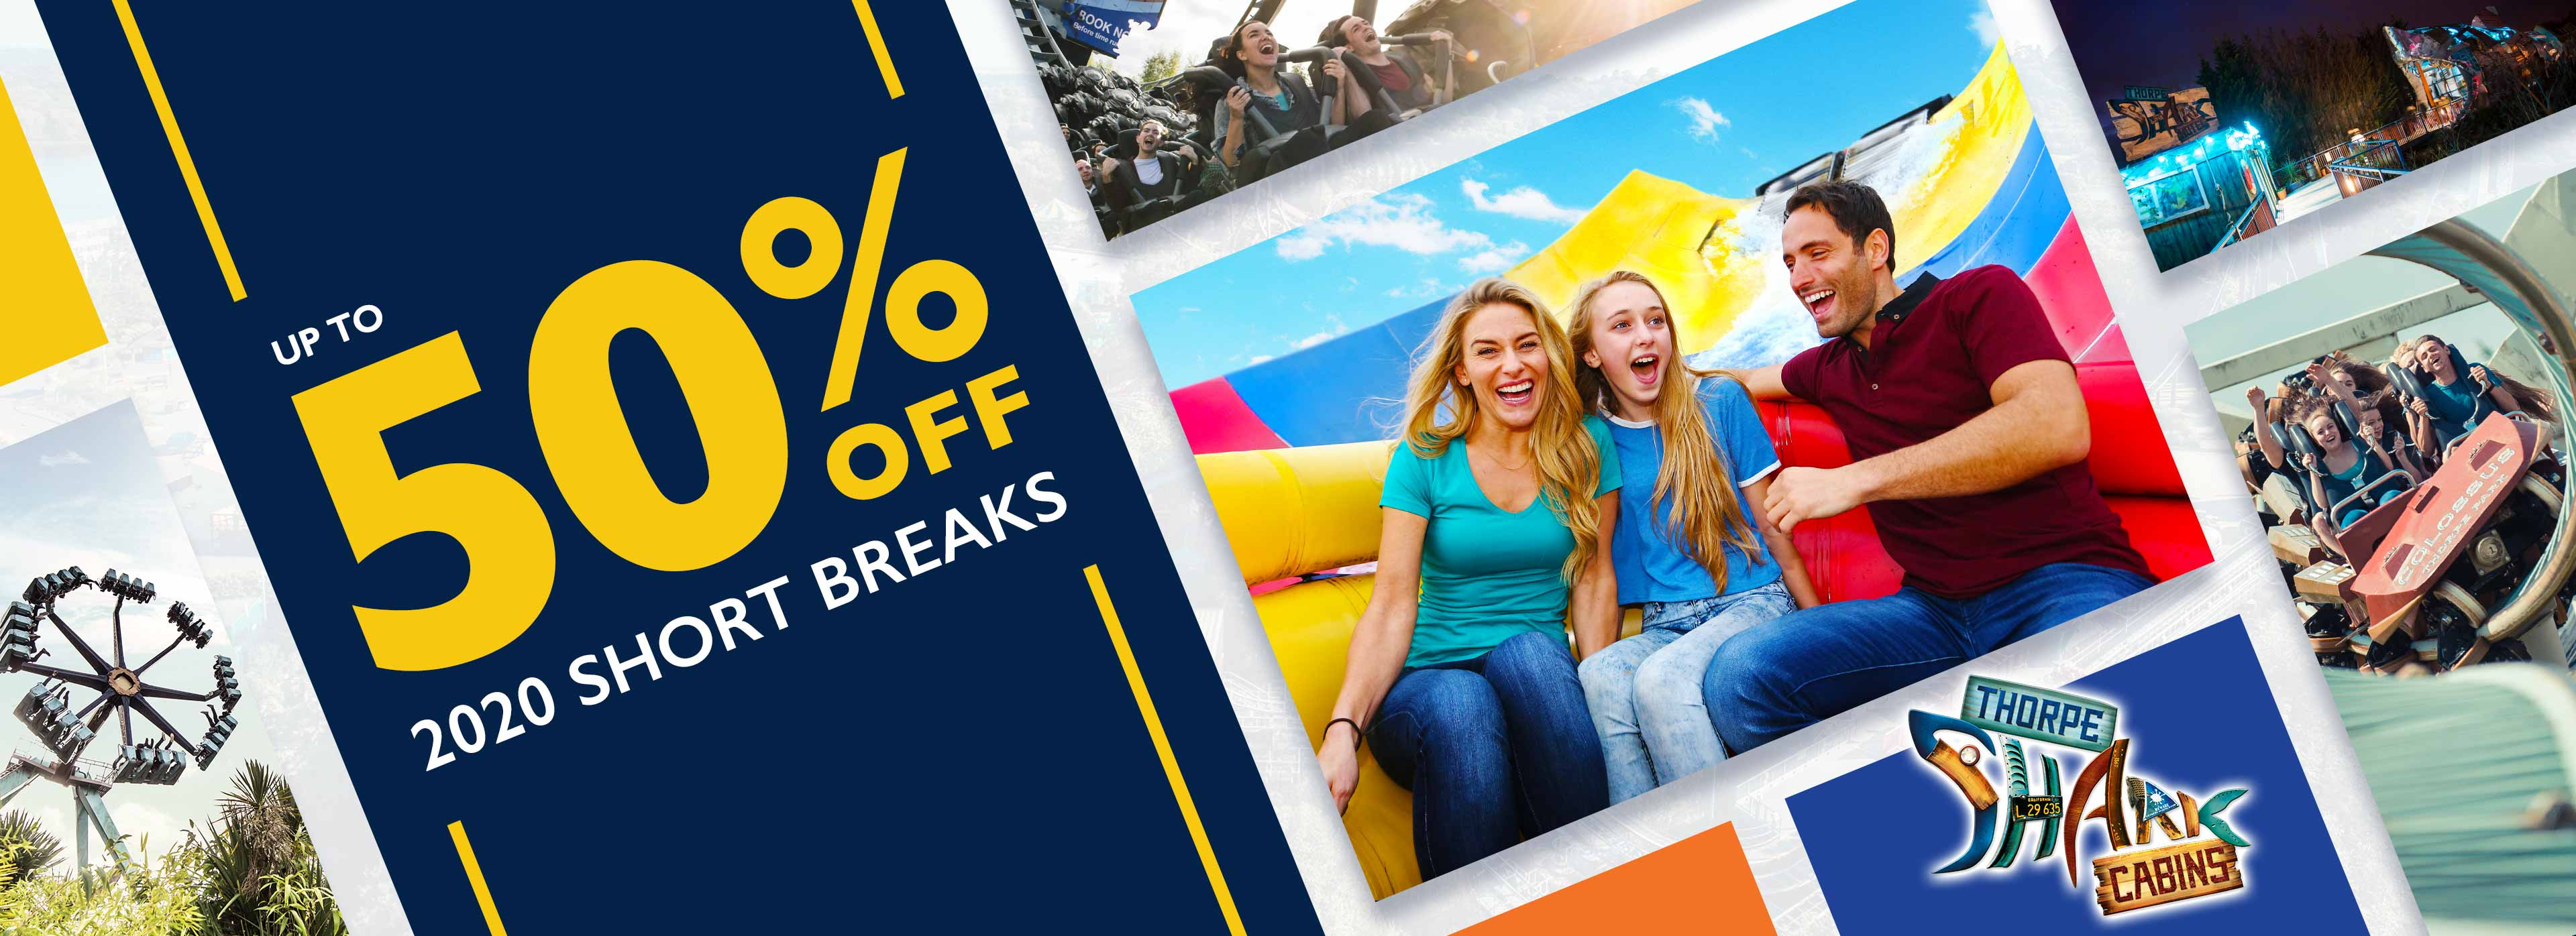 Early Booking Offer at Thorpe Park Resort